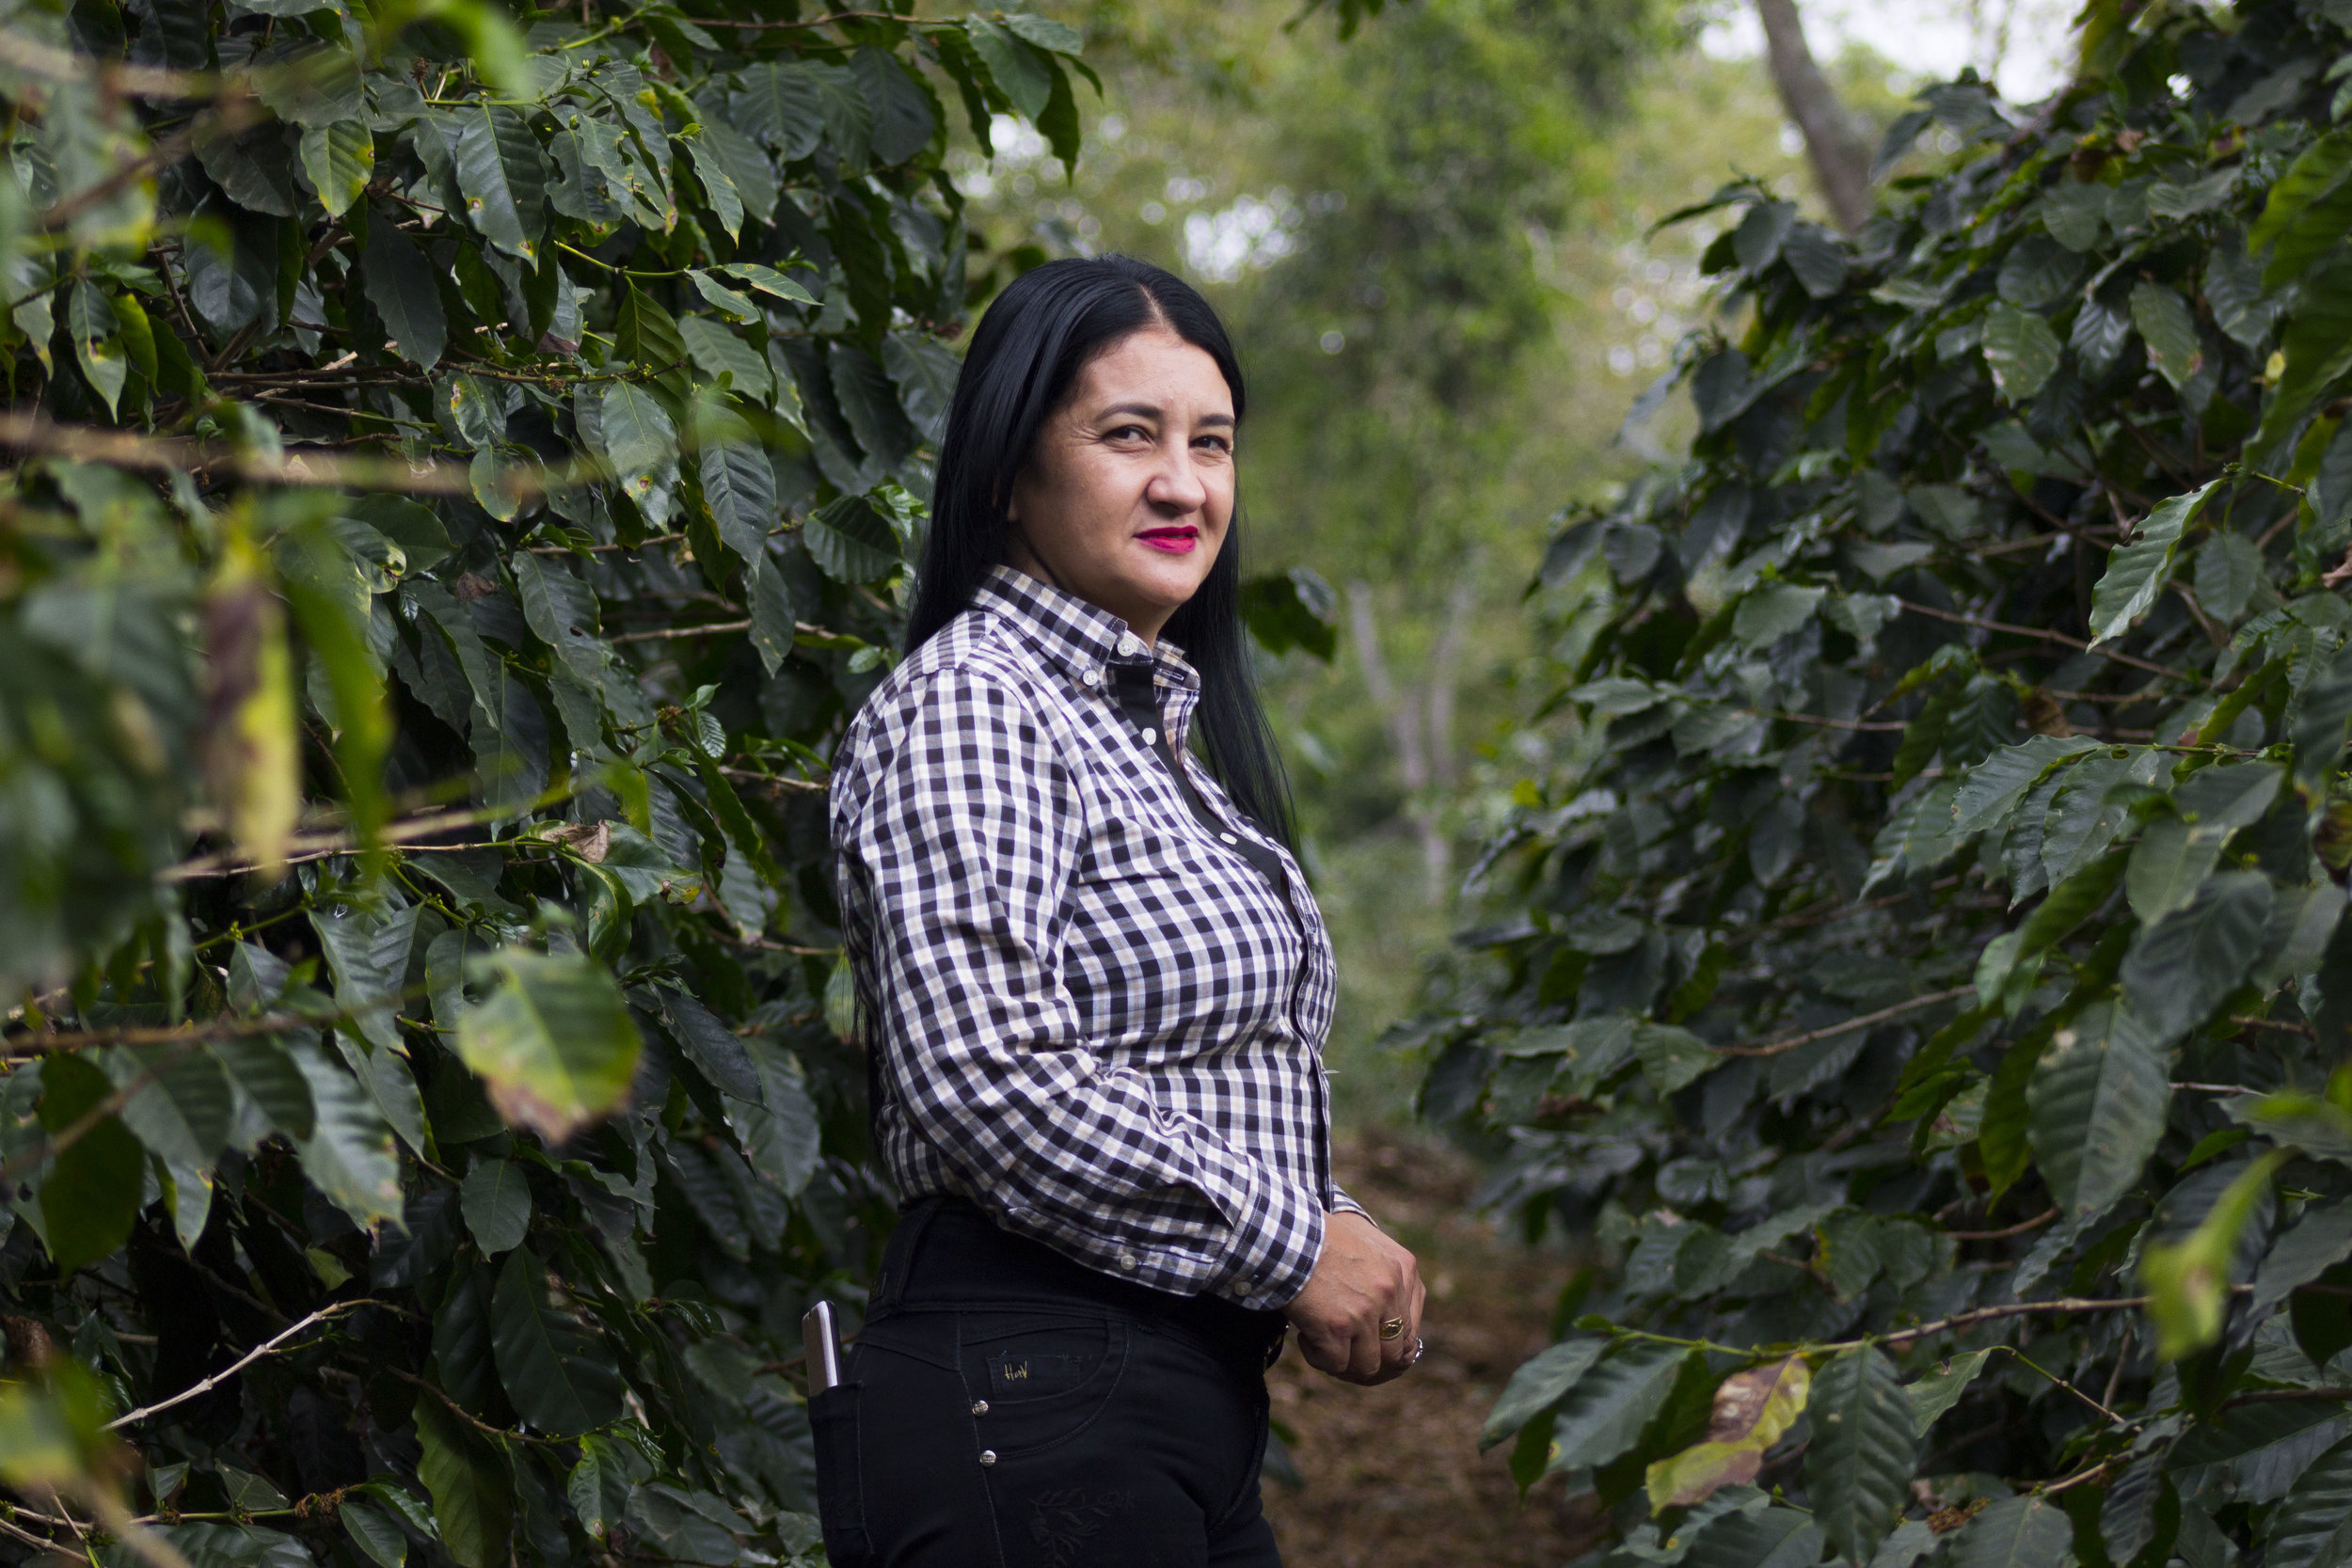 Maribel Perez, Coffee Grower and Farm Owner